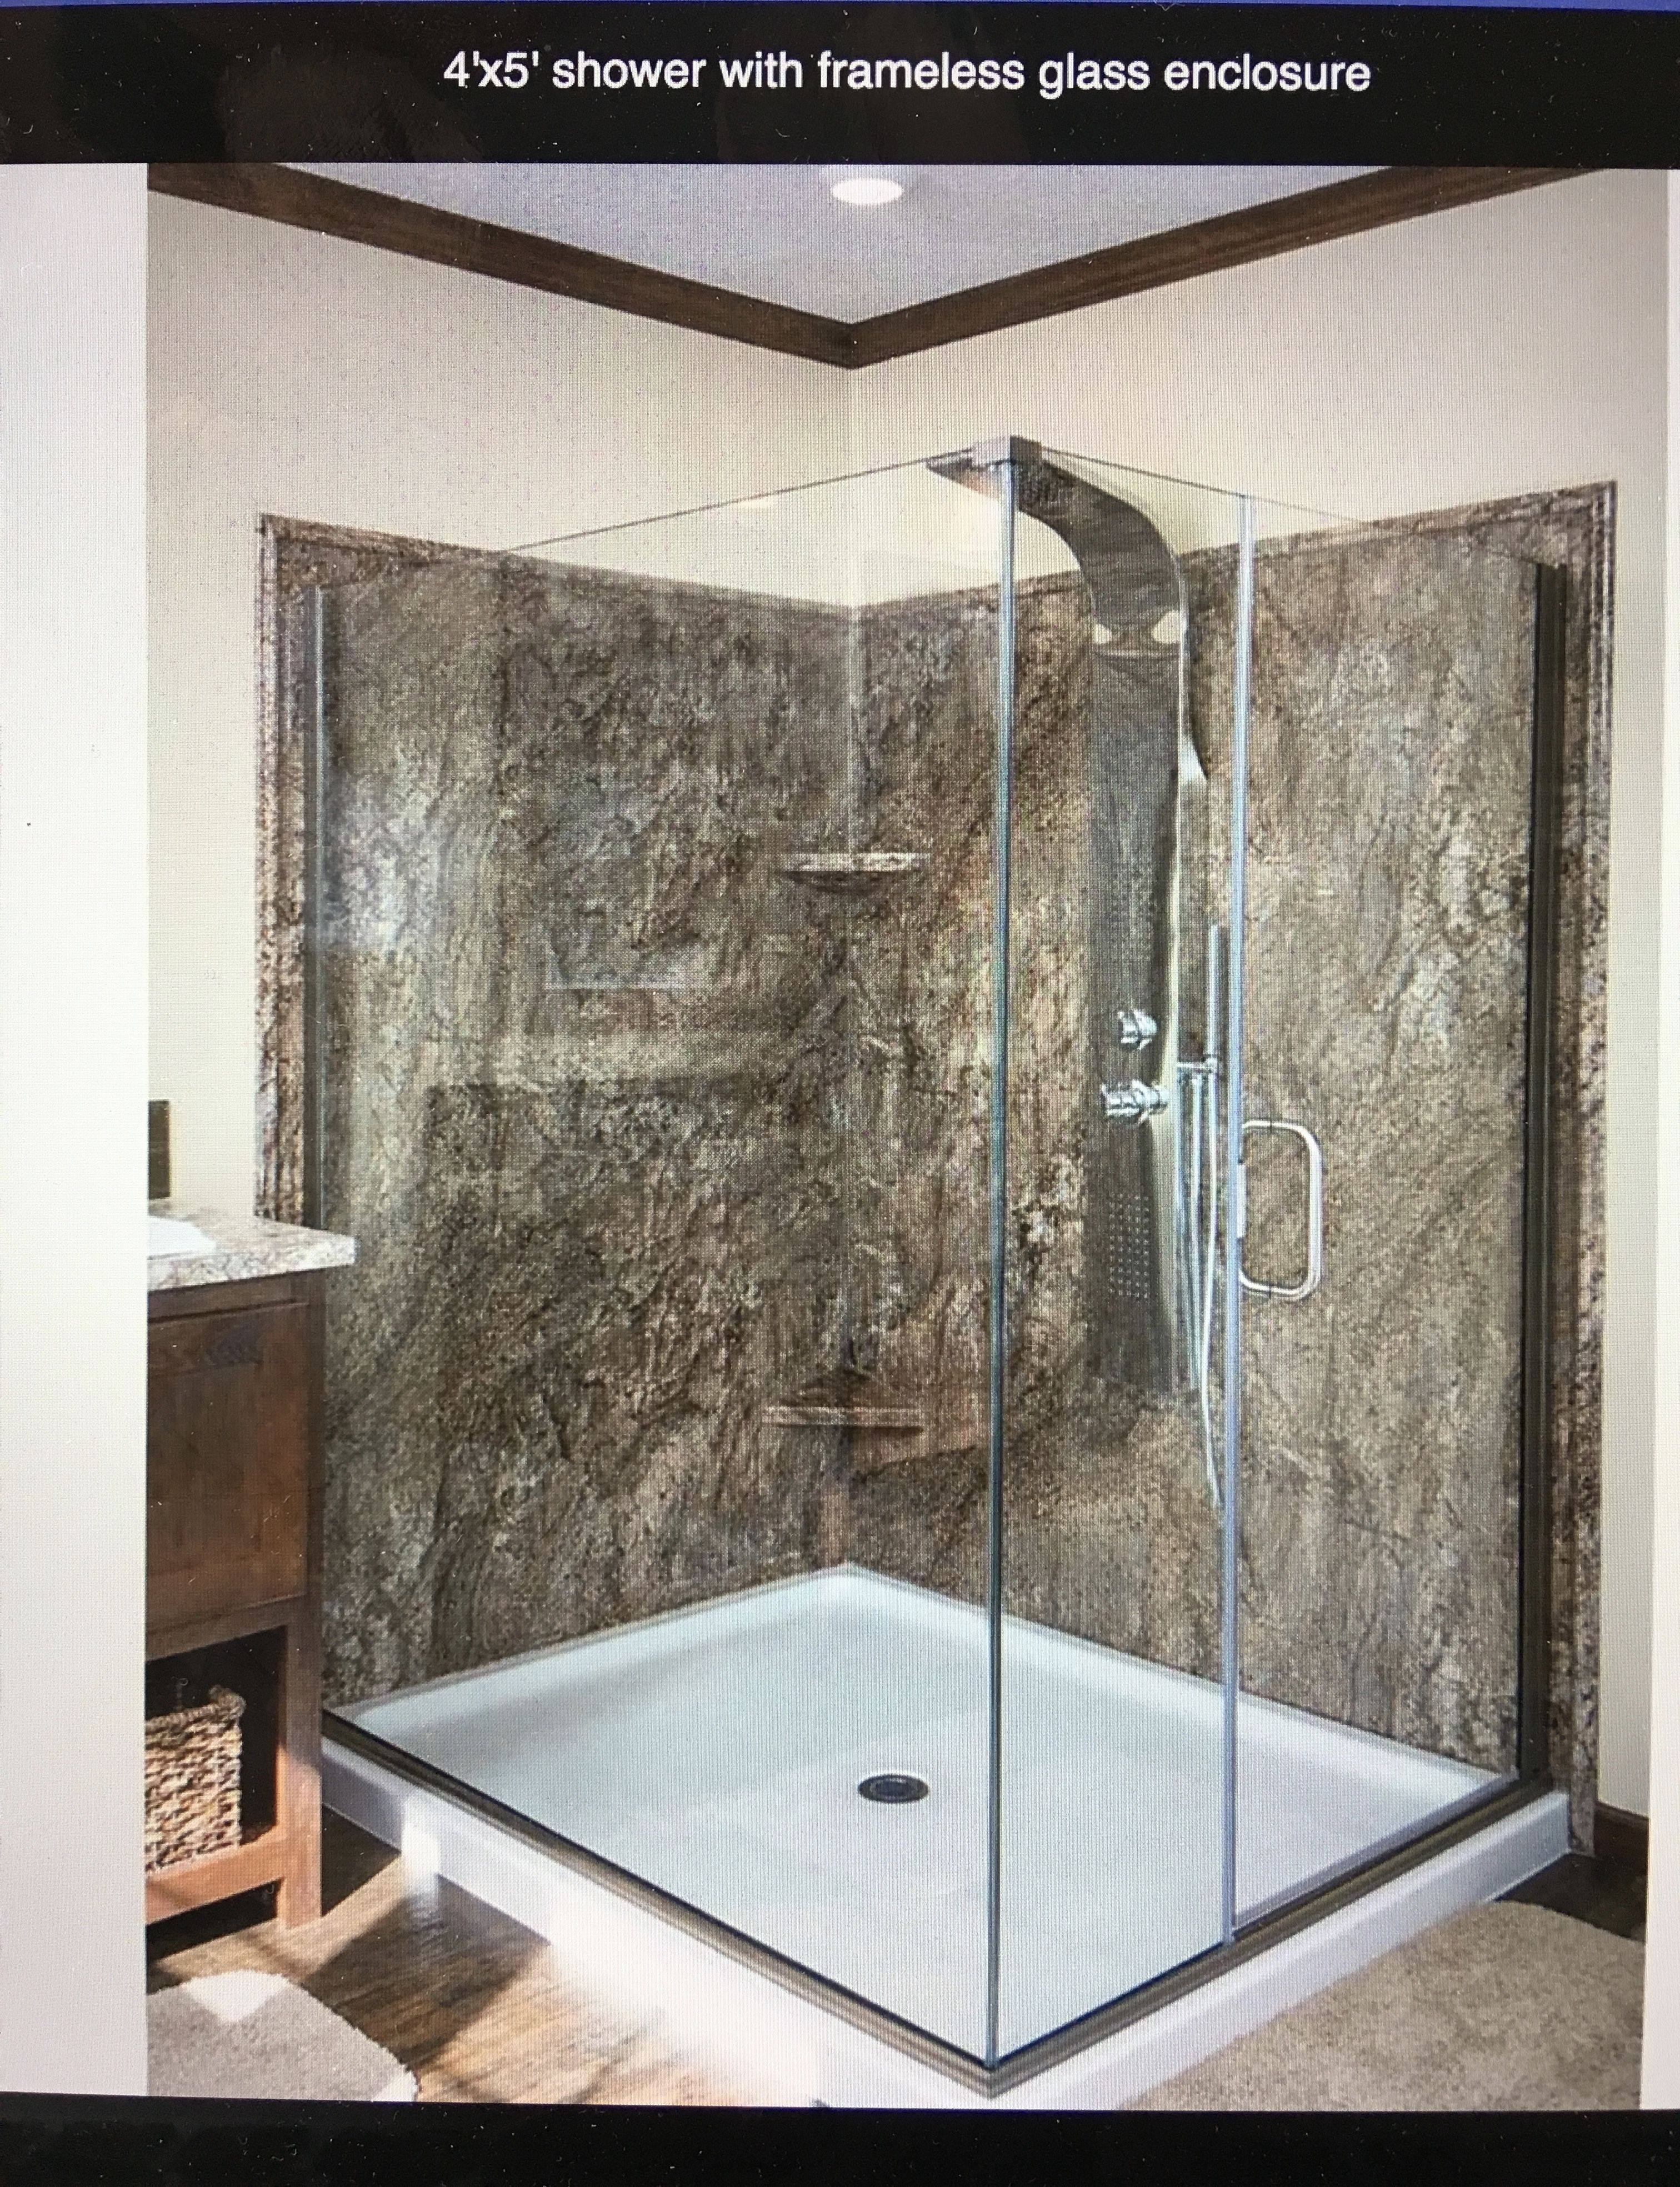 Beau 4x5 Shower With Frameless Glass Enclosure